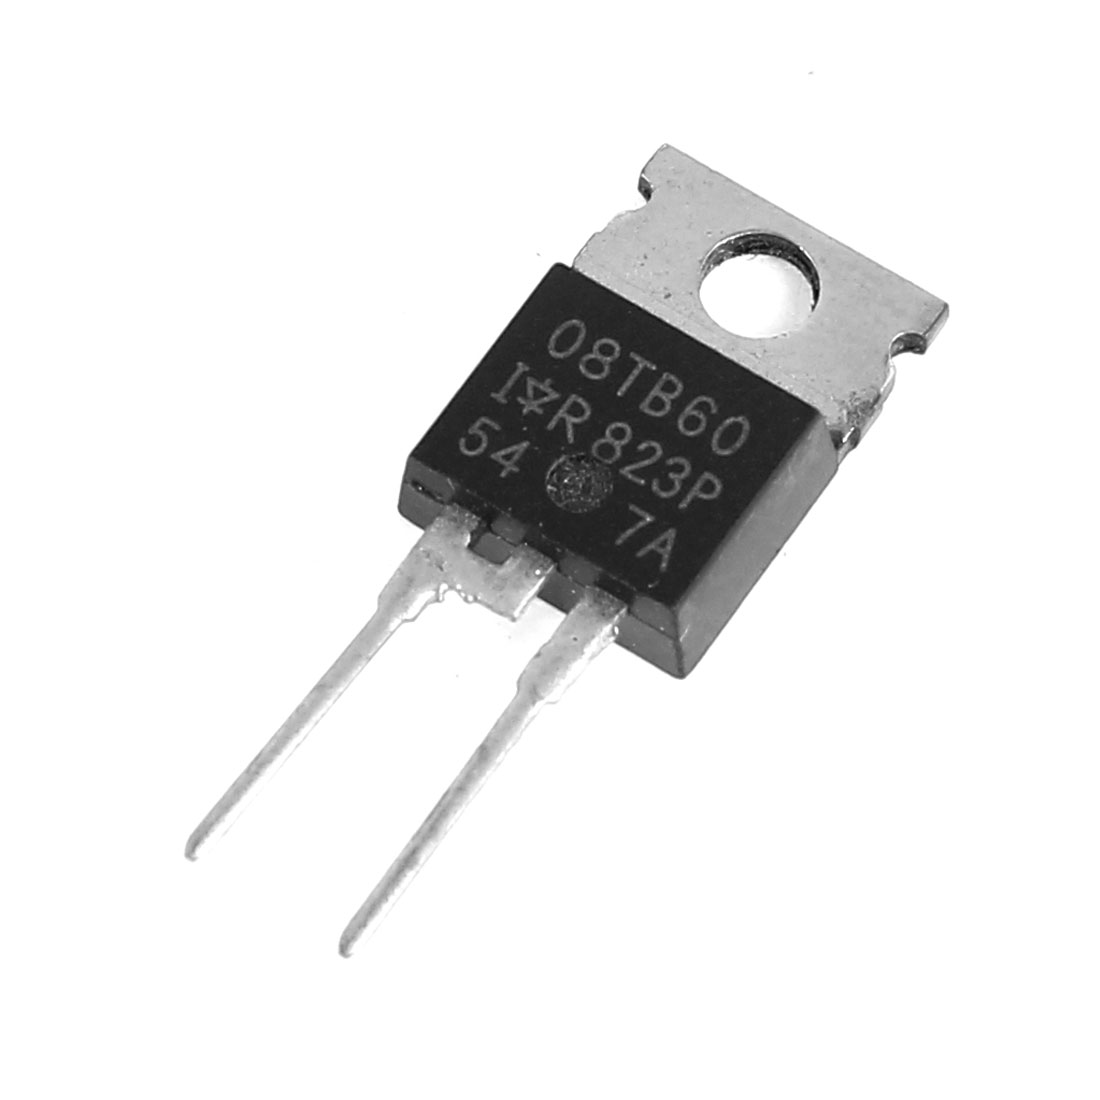 HFA08TB60 600V 5A 3 Pin Terminals TO-220AC Package Complementary Semiconductor NPN Silicon Transistor